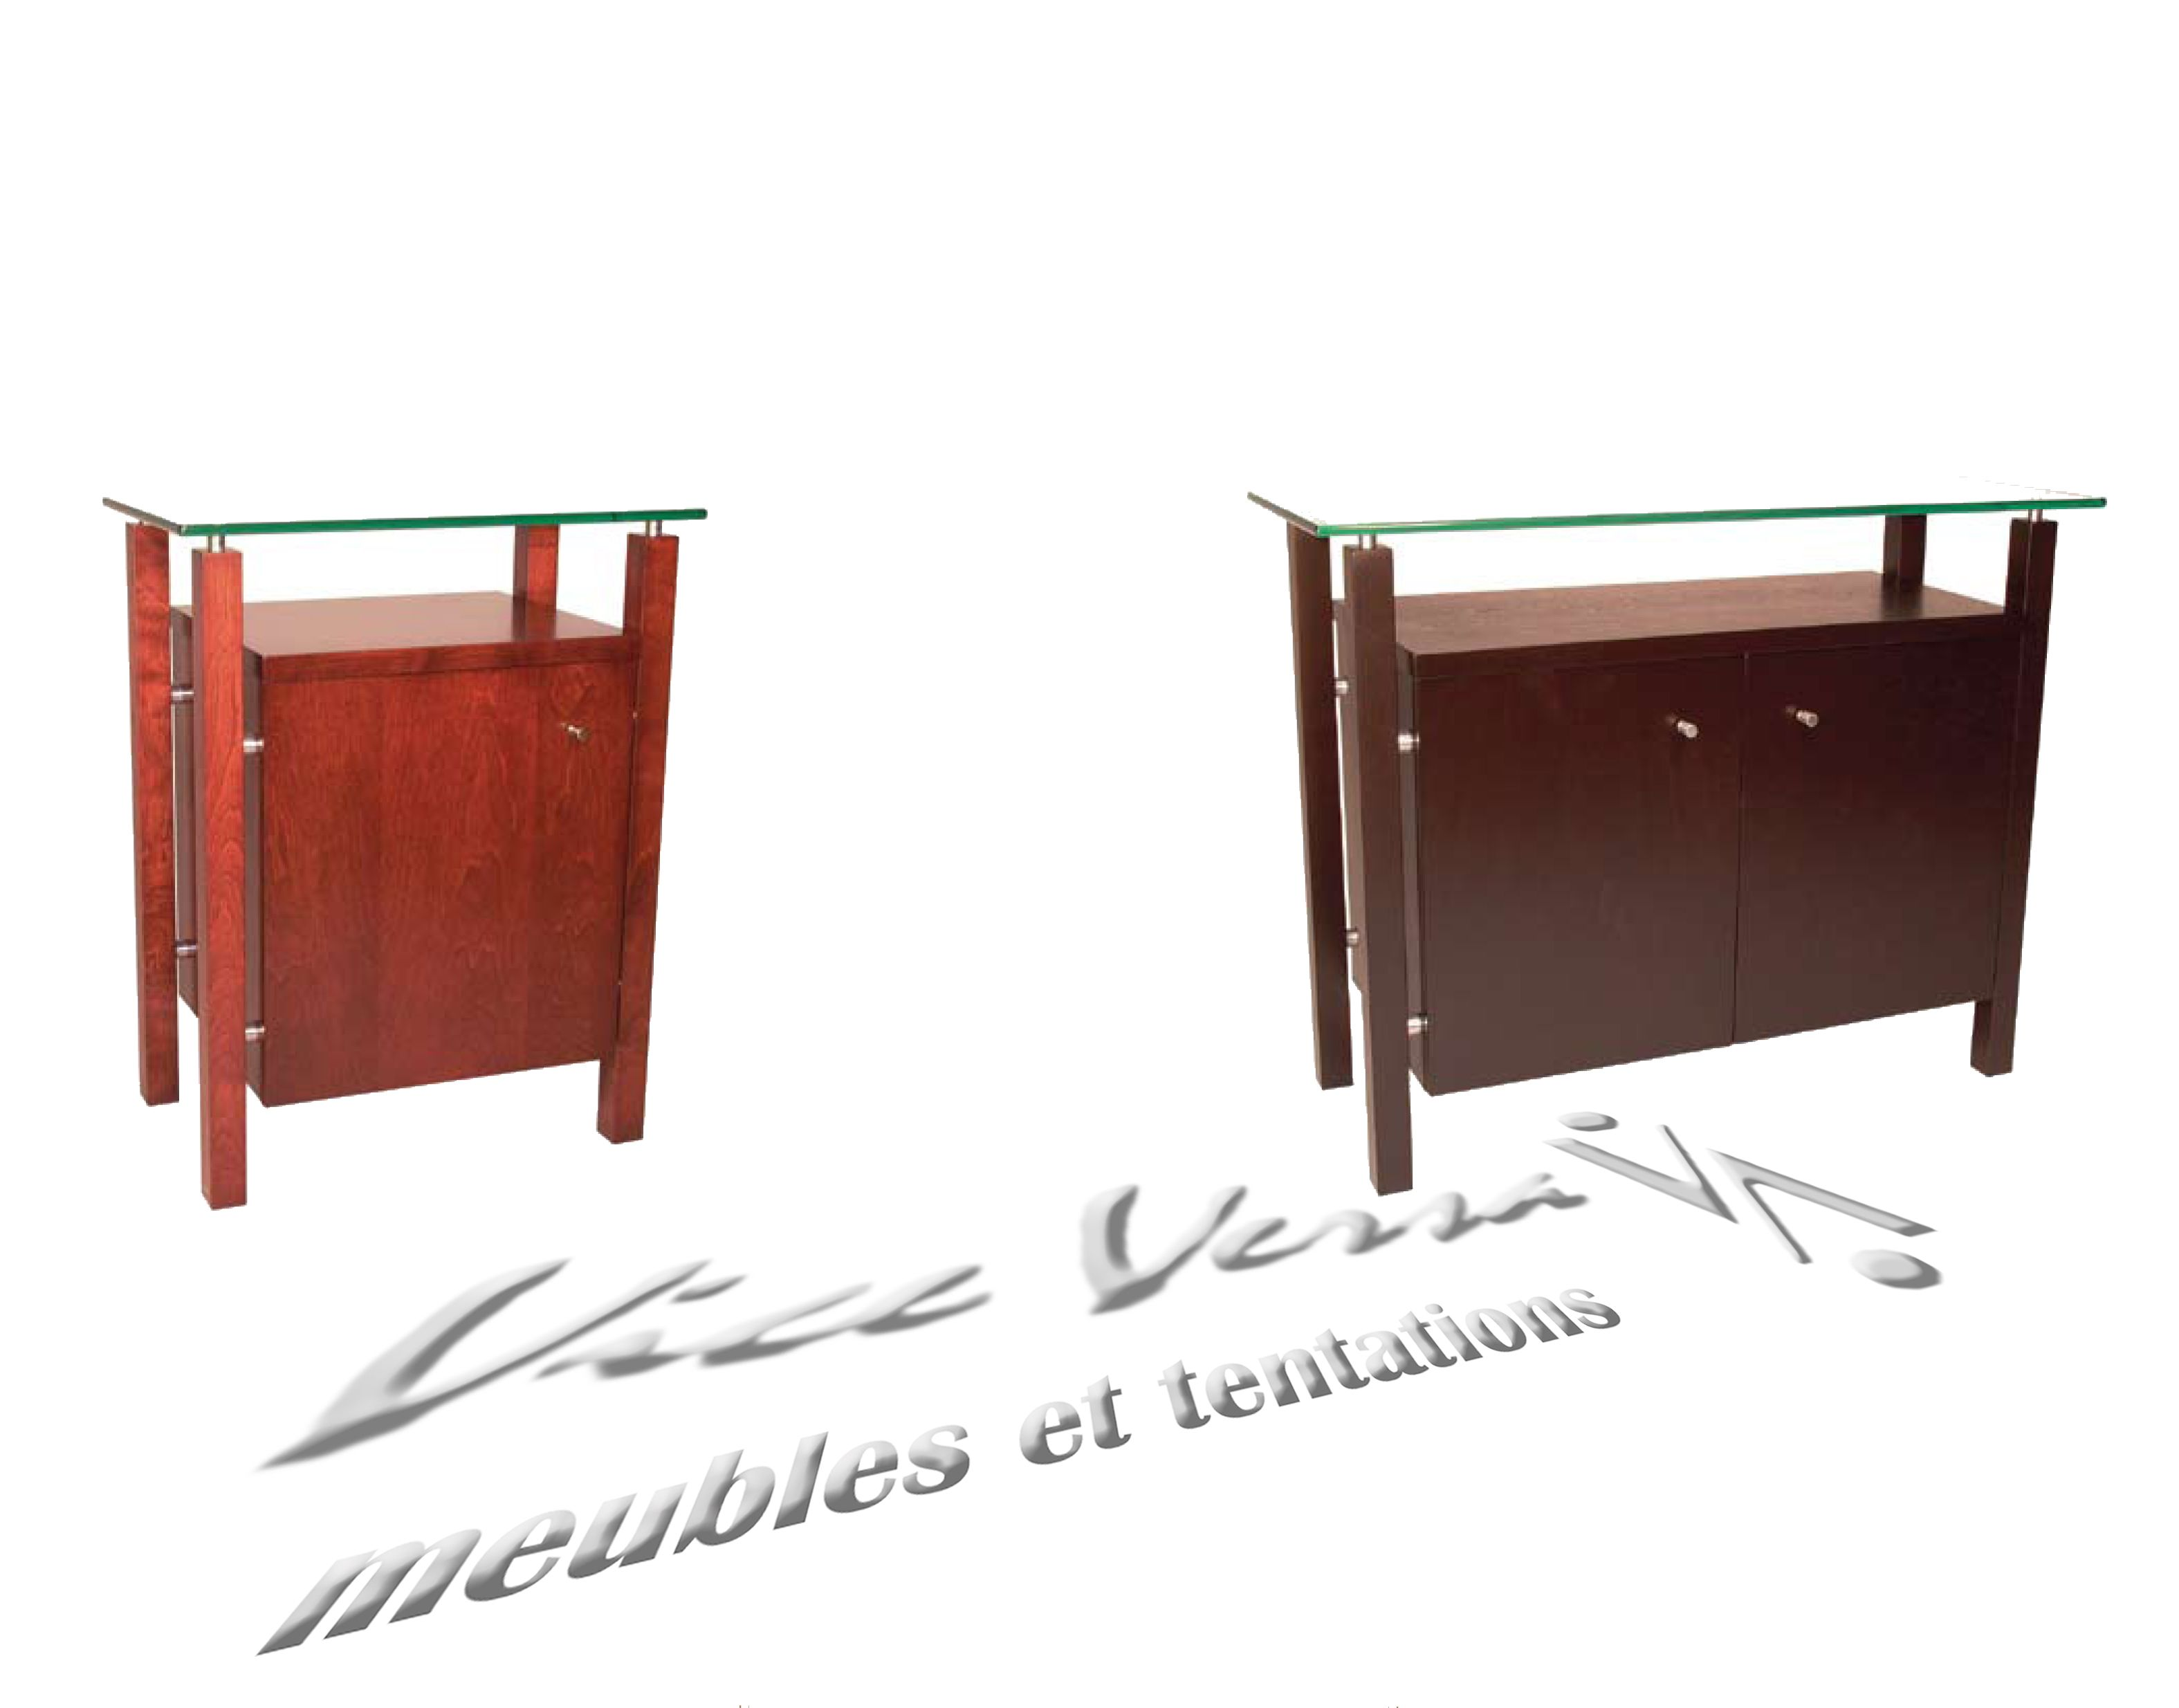 Magasin Meuble Salon Meuble Vice Versa Meuble Salon Table Furniture Livingroom